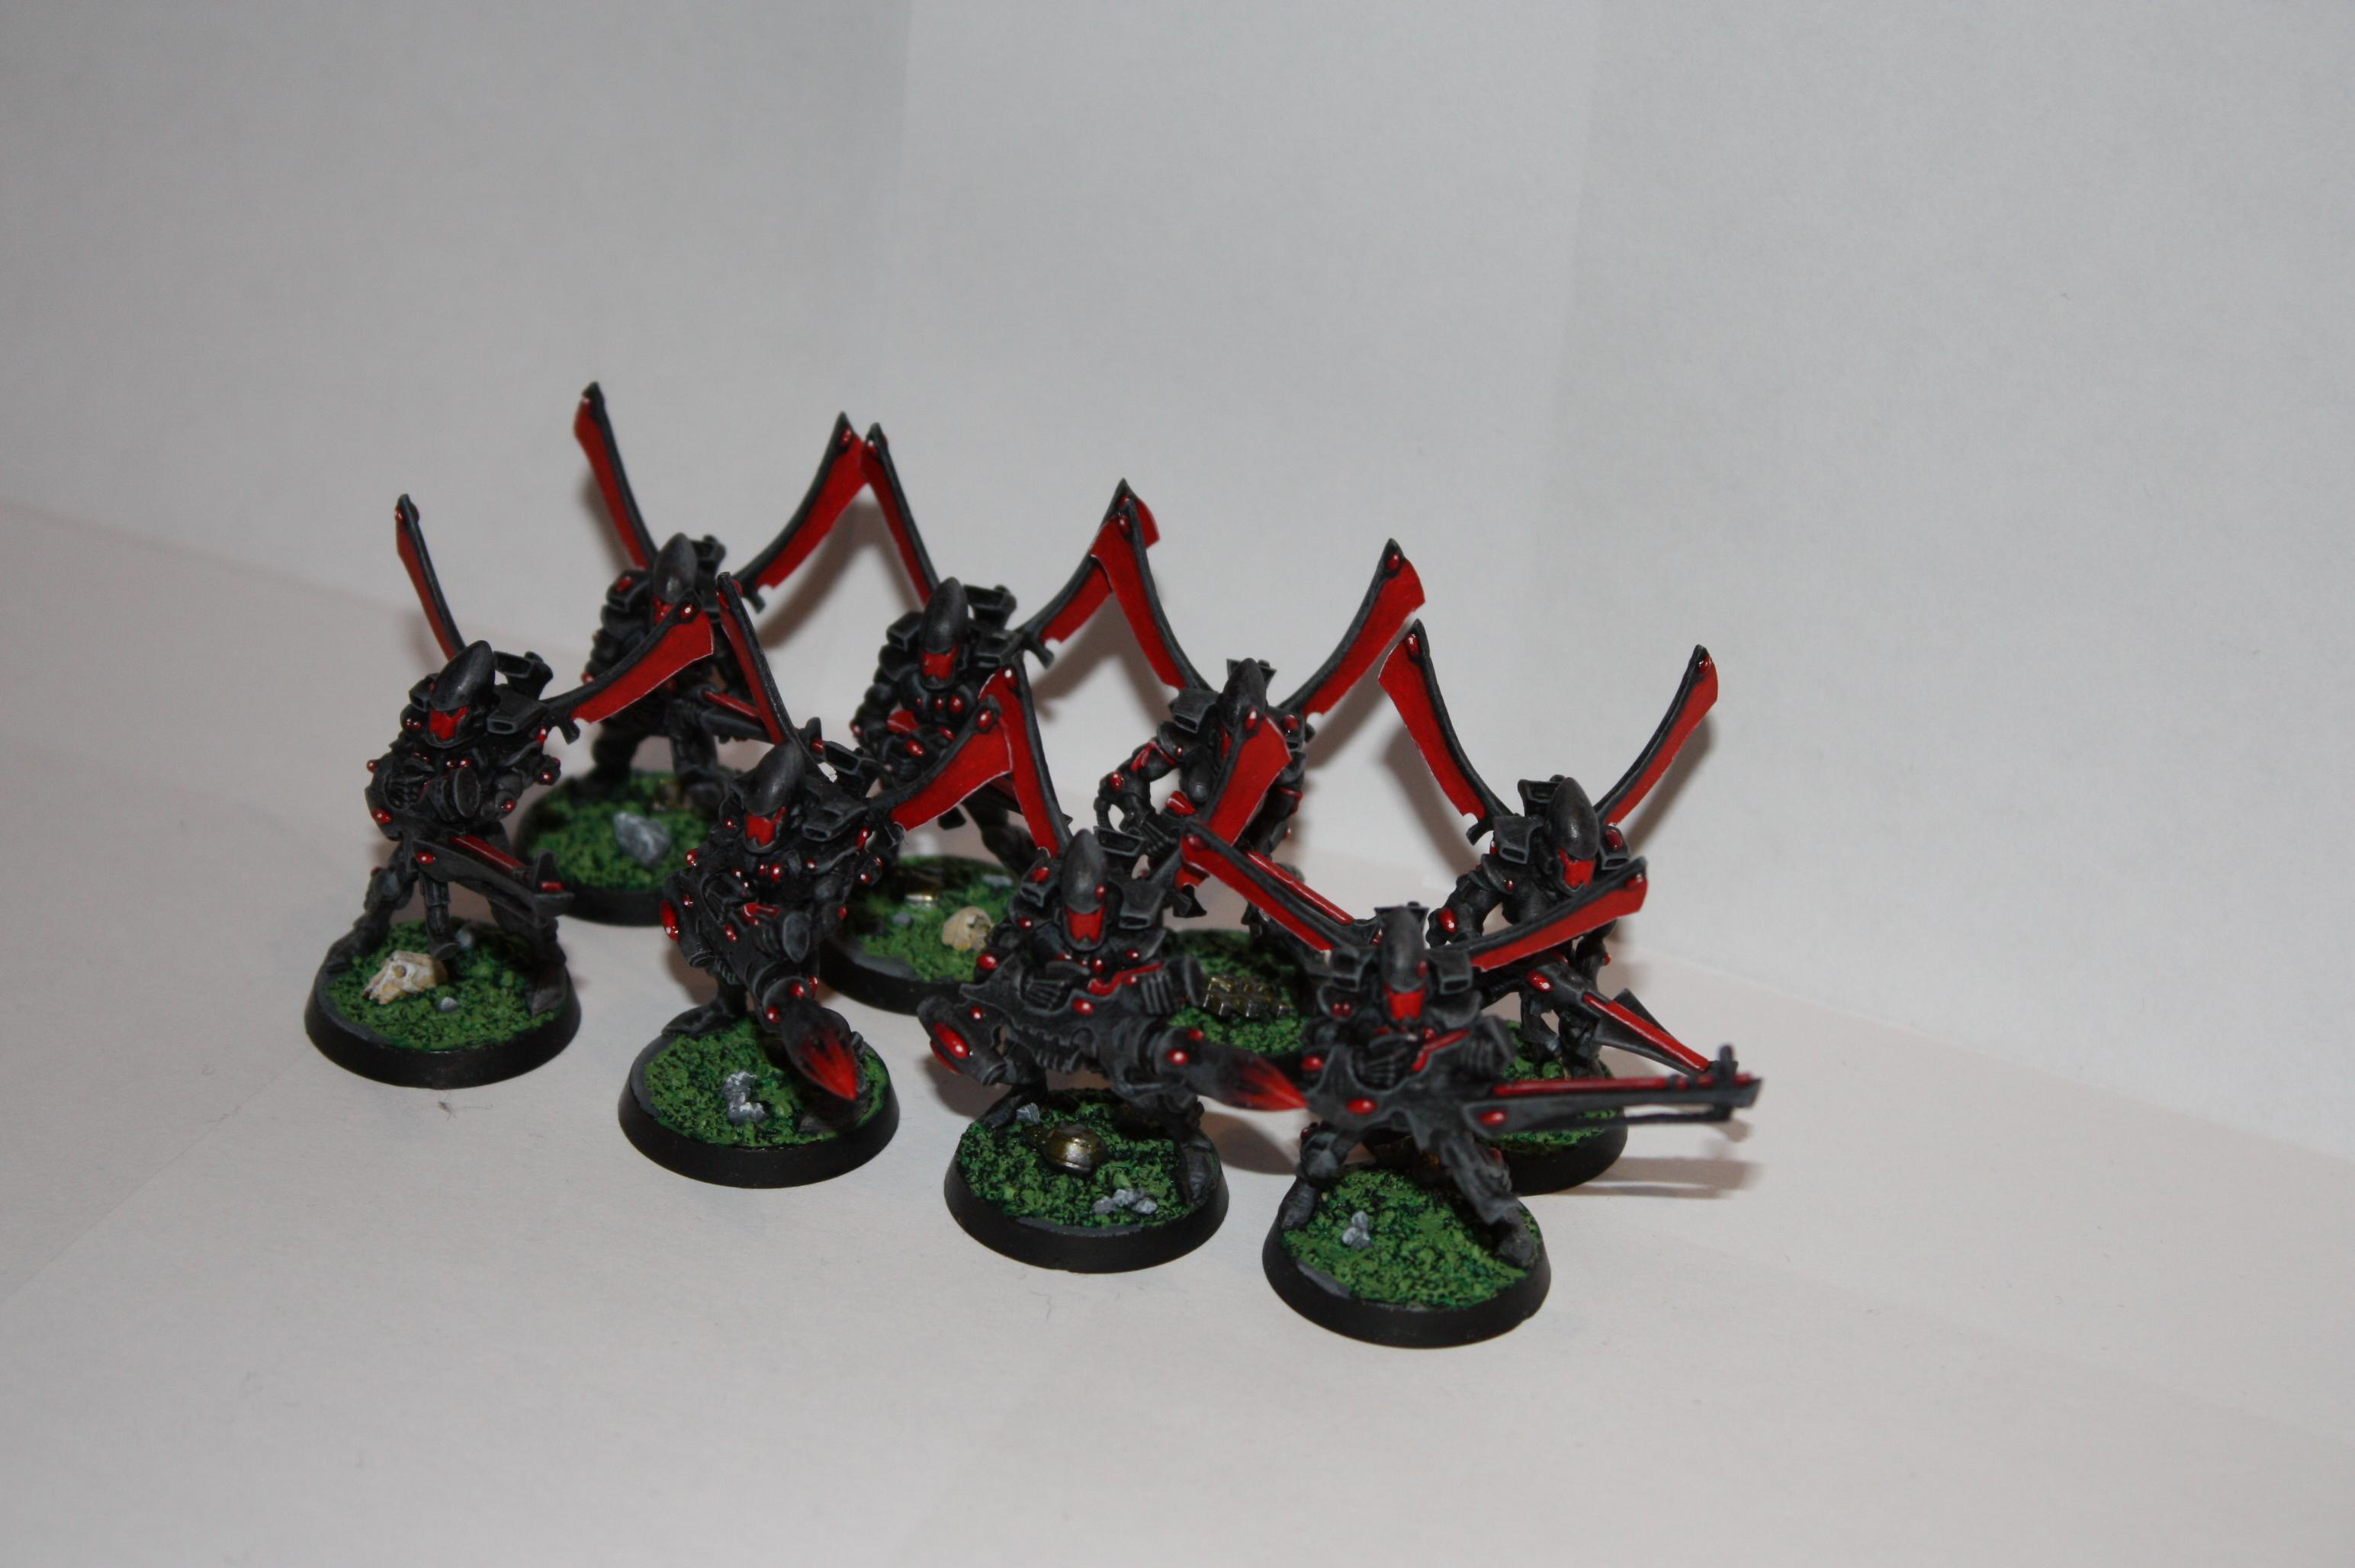 Corsairs, Eldar, Forge World, Guardians, Ultwhe, W40k, Warhammer 40,000